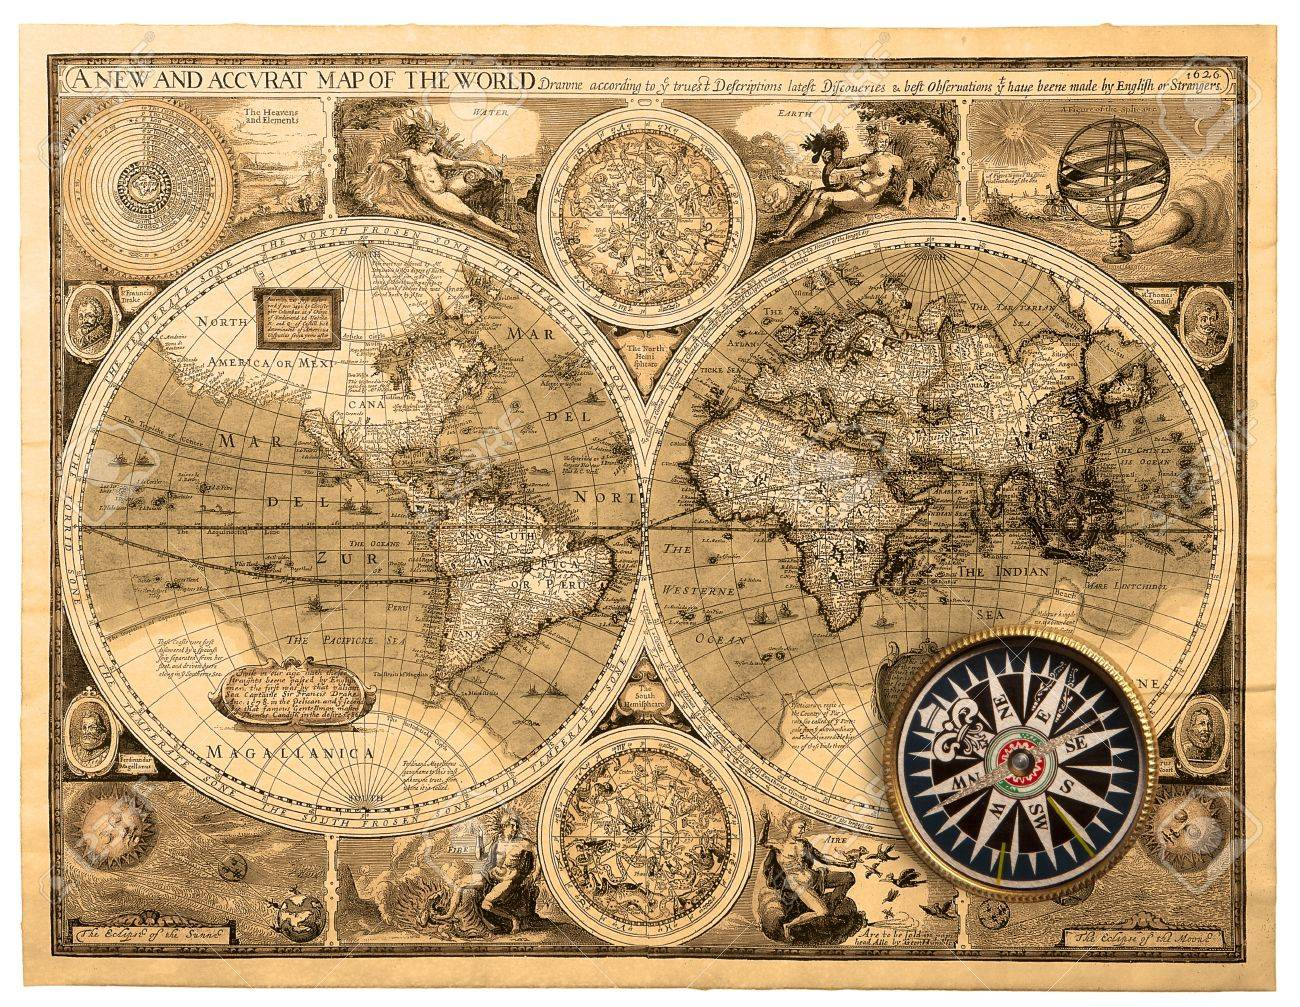 A New And Accvrat Map Of The World 1626.Old Map 1626 A New And Accvrat Map Of The World Stock Photo